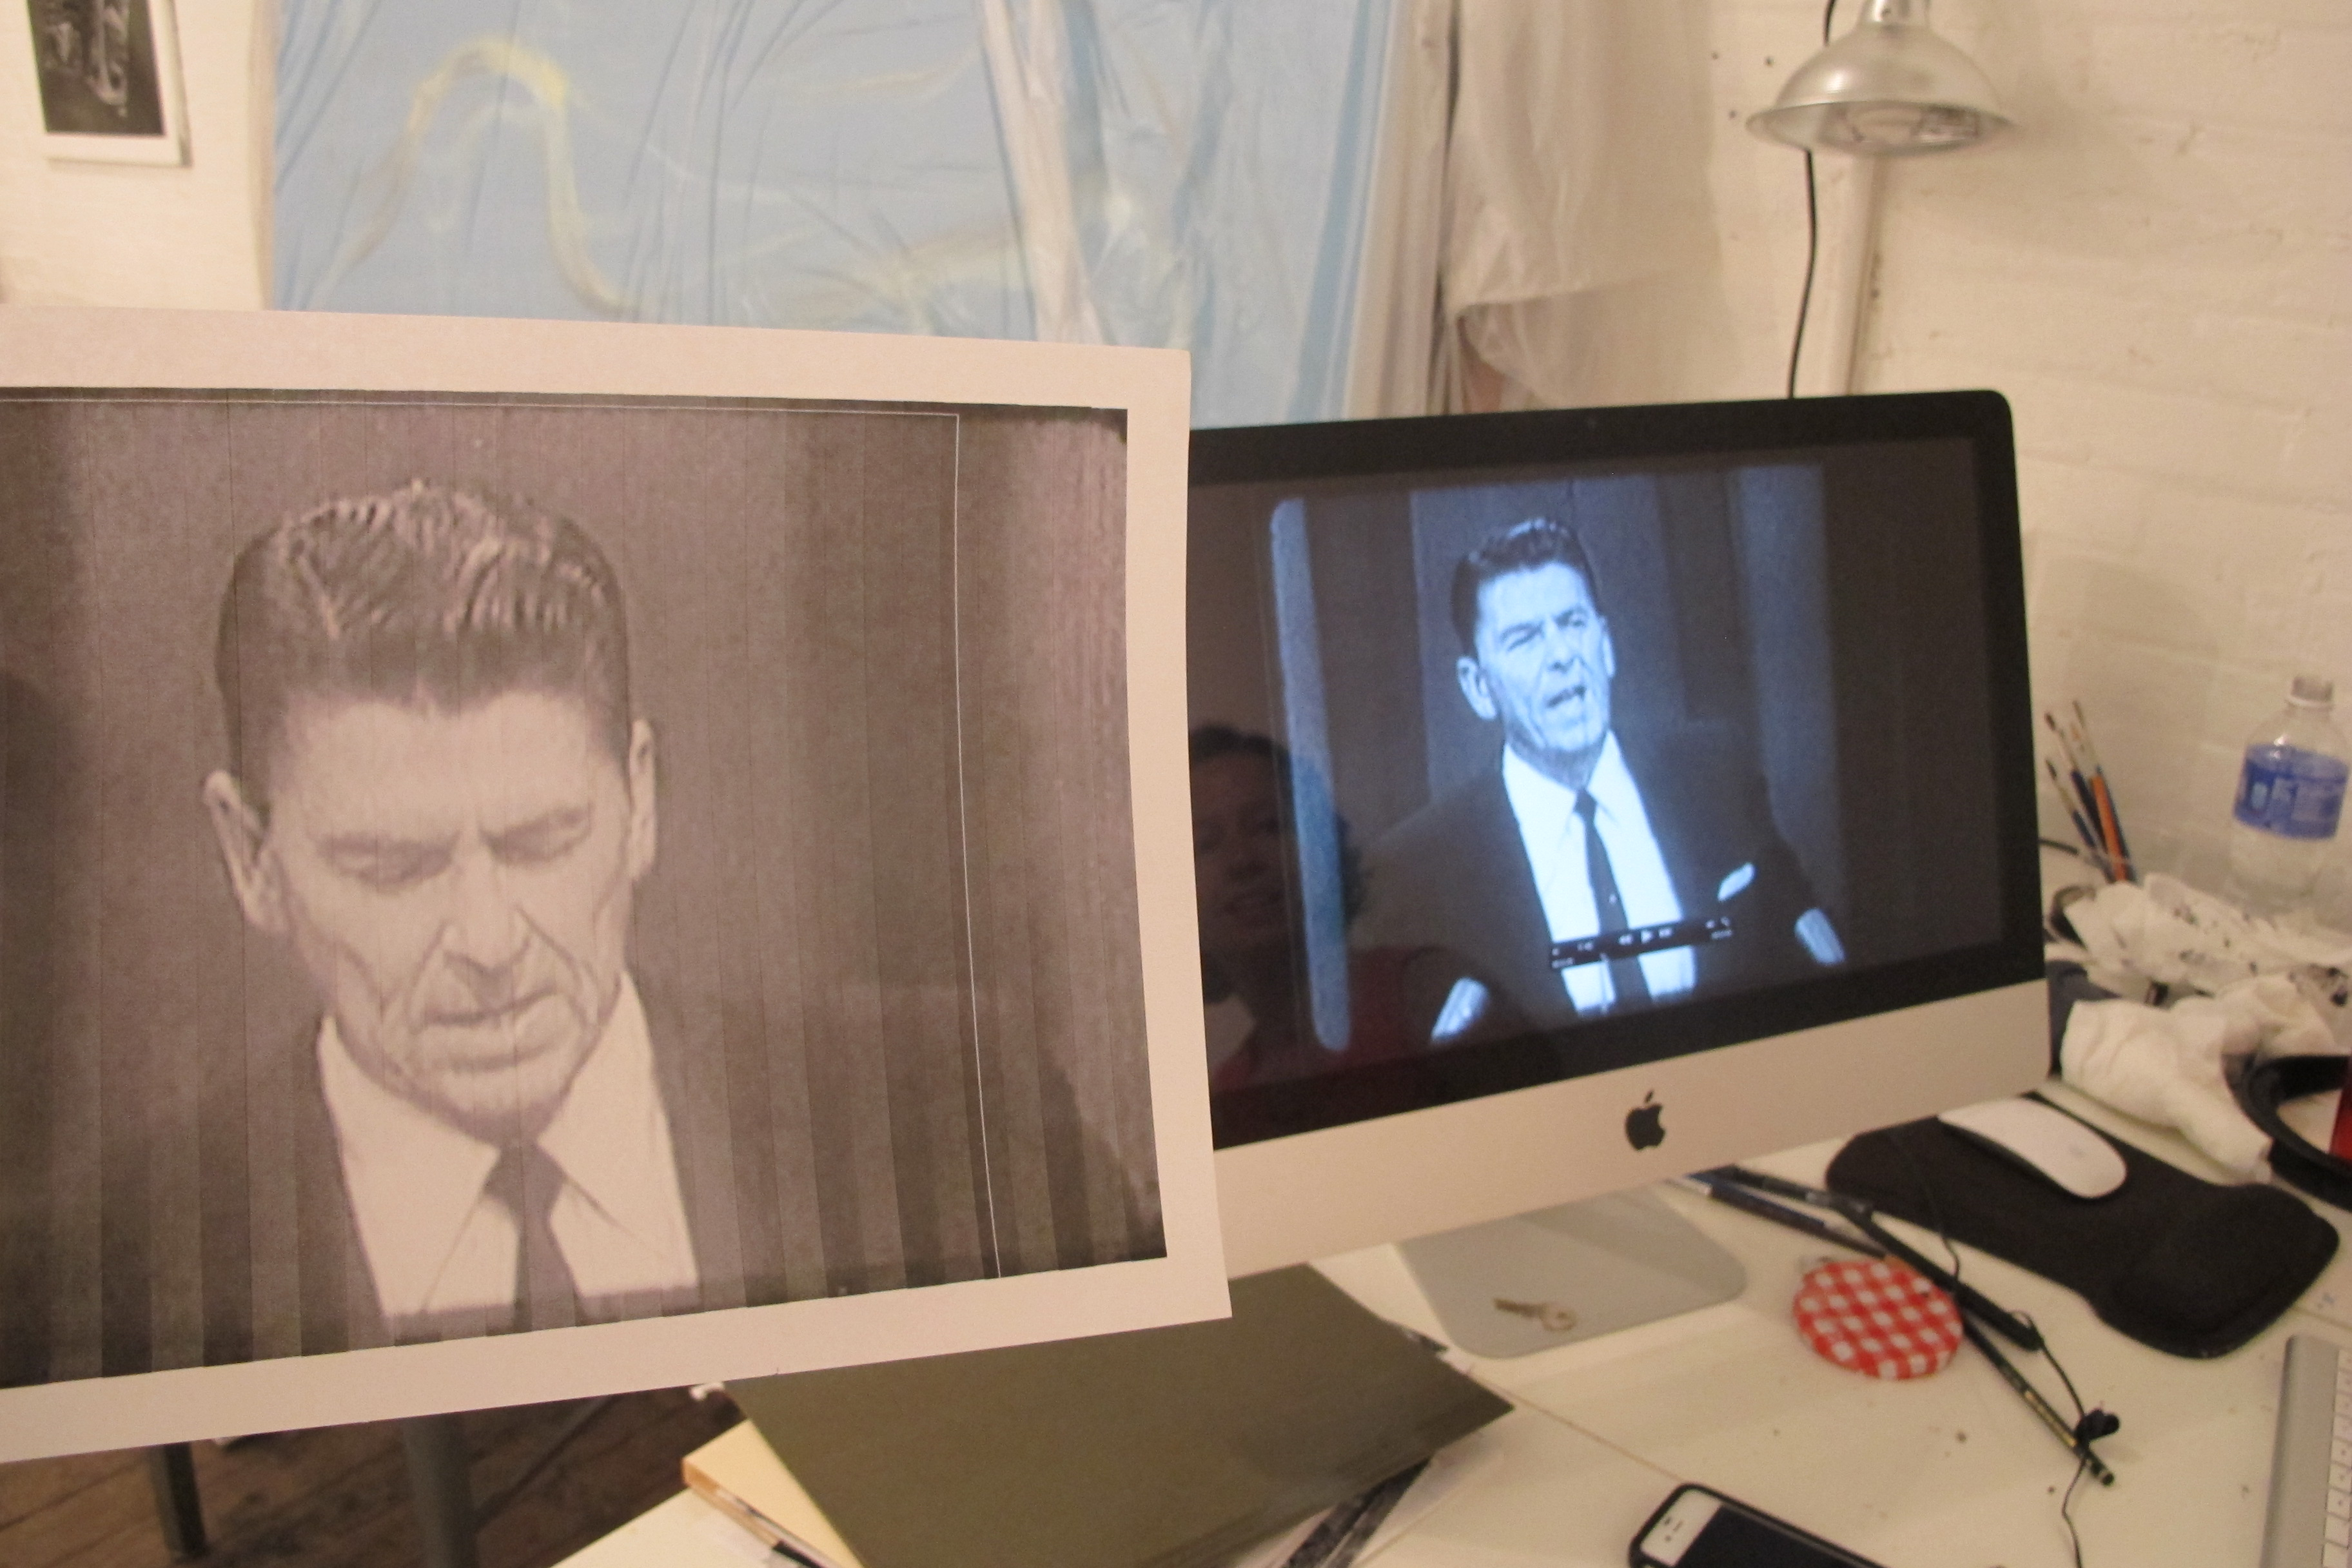 Work-in-progress: Istomina's new video based on the footage from Ronald Reagan's speech during Barry Goldwater's campaign in 1964